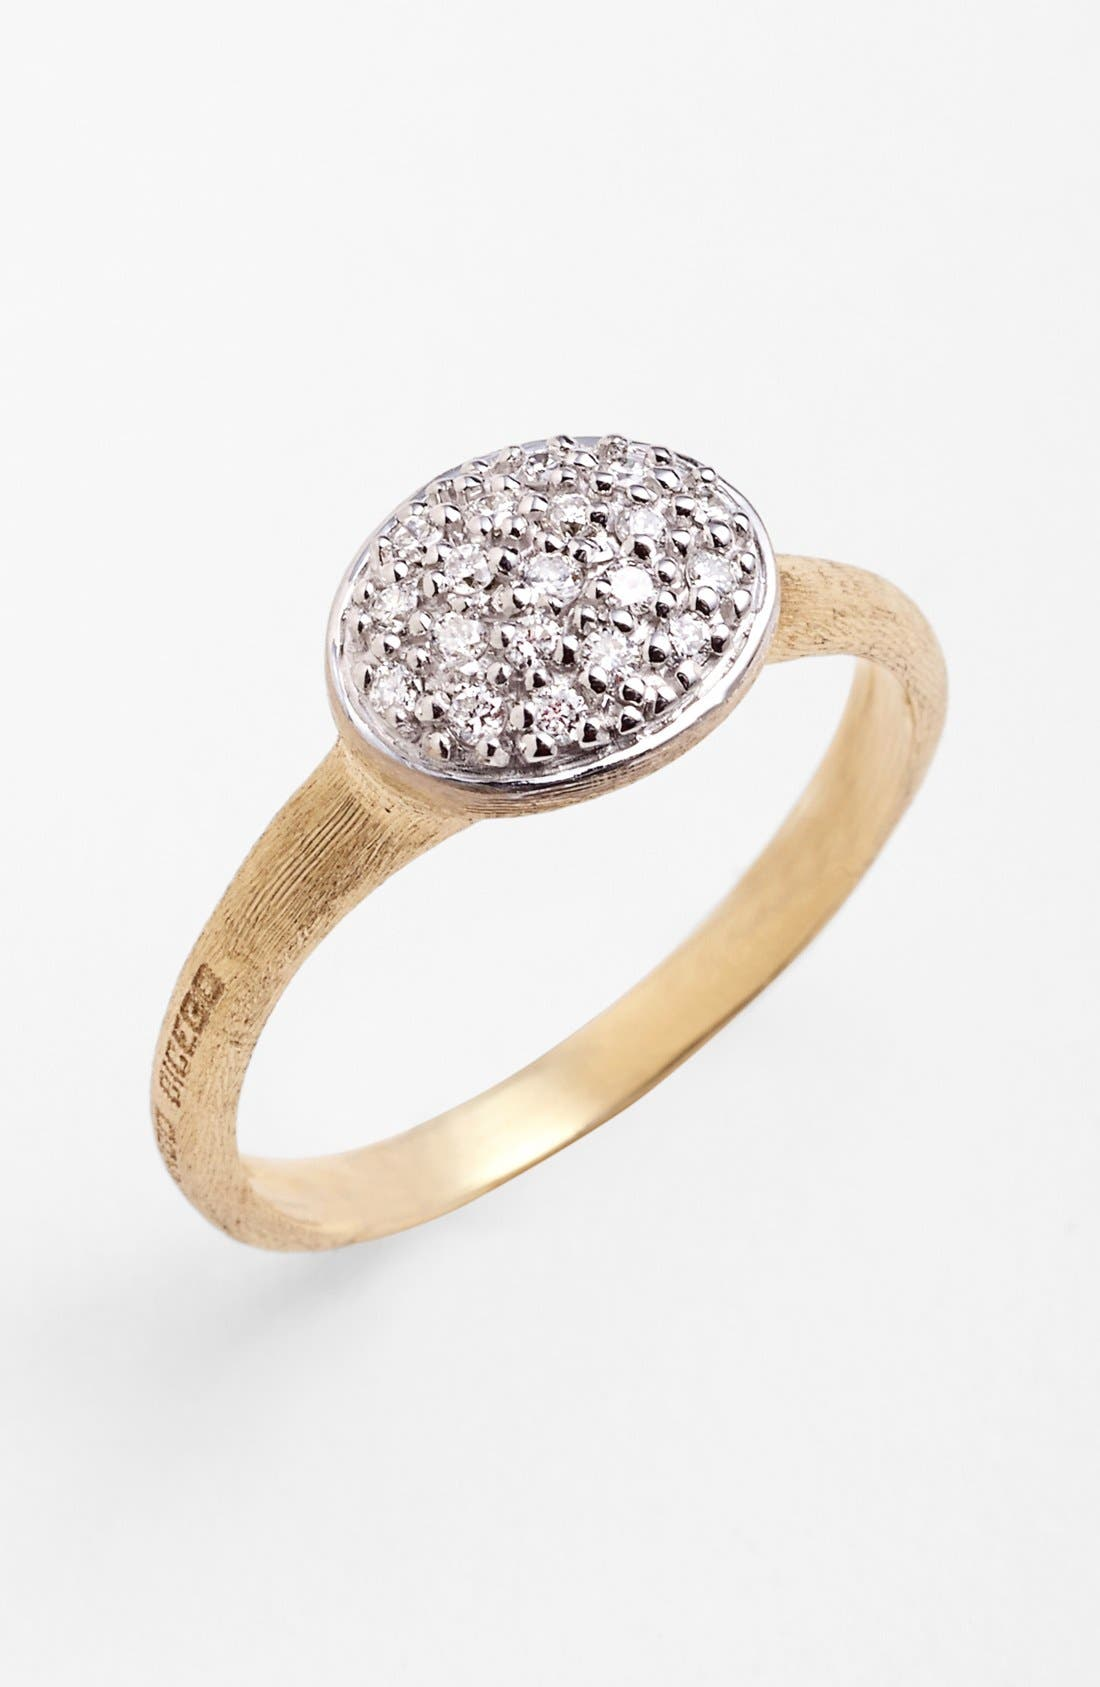 Alternate Image 1 Selected - Marco Bicego 'Siviglia' Small Diamond Cocktail Ring